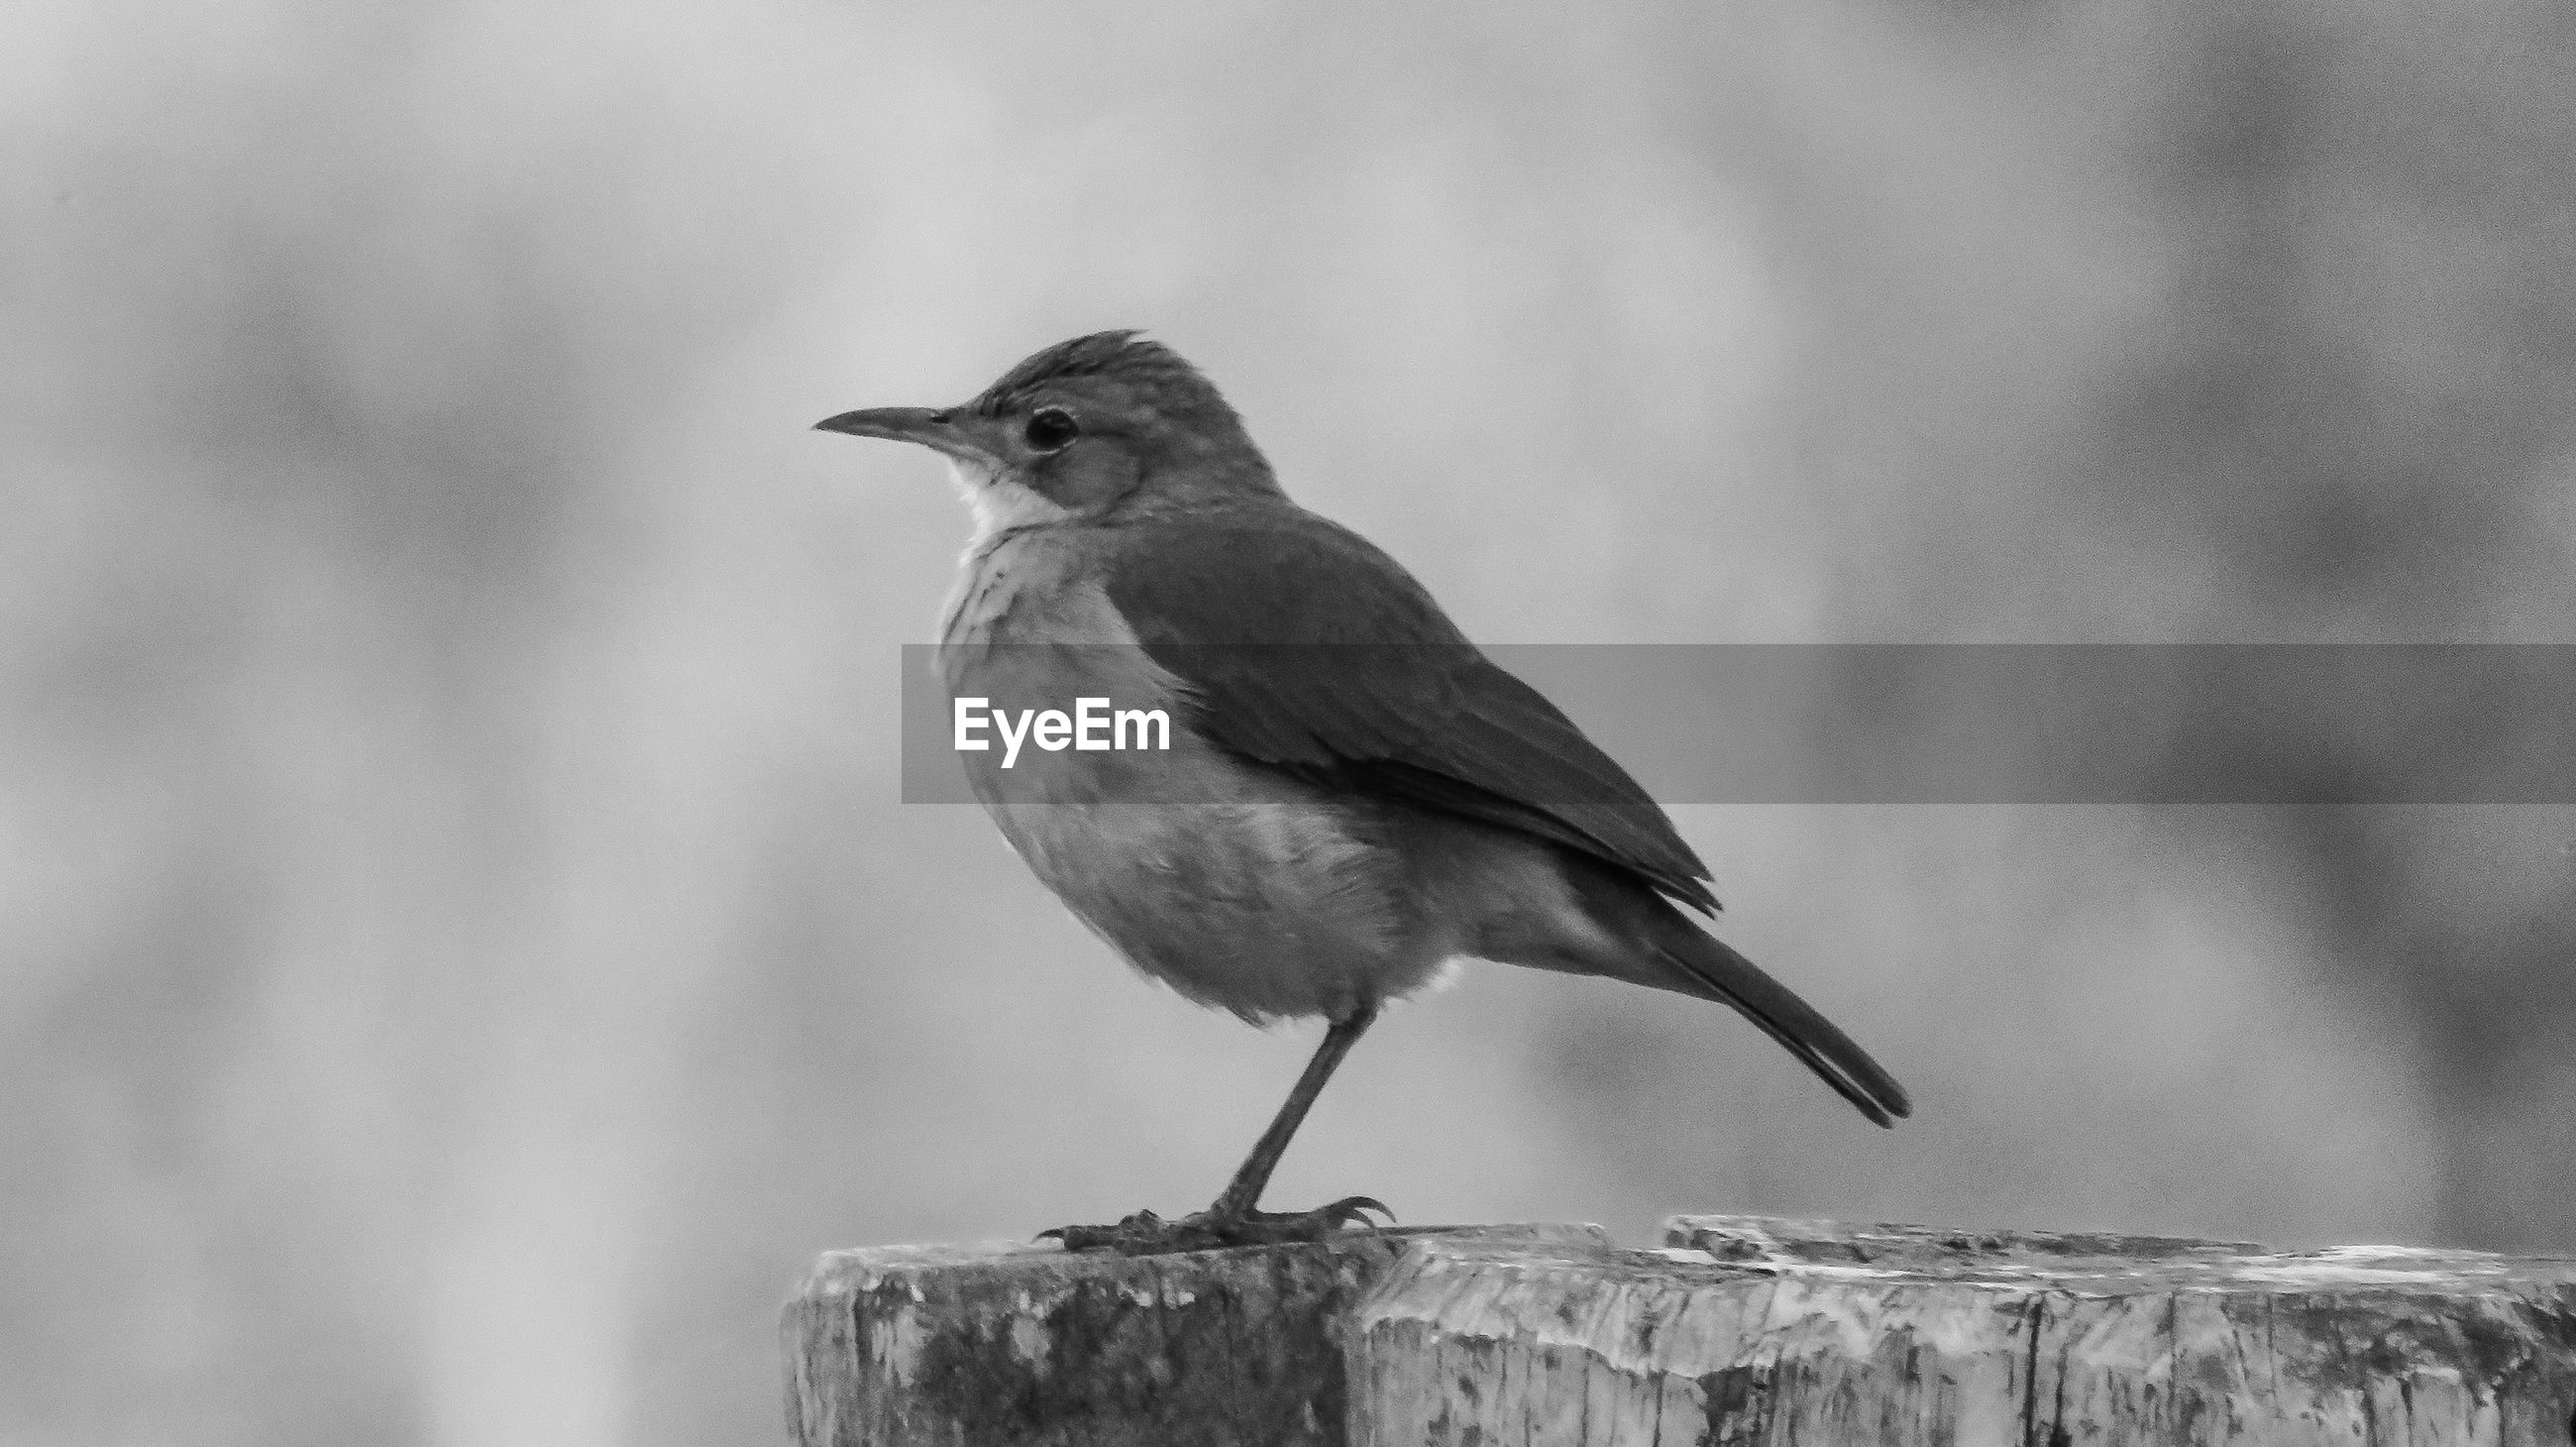 SIDE VIEW OF BIRD PERCHING ON WOODEN POST